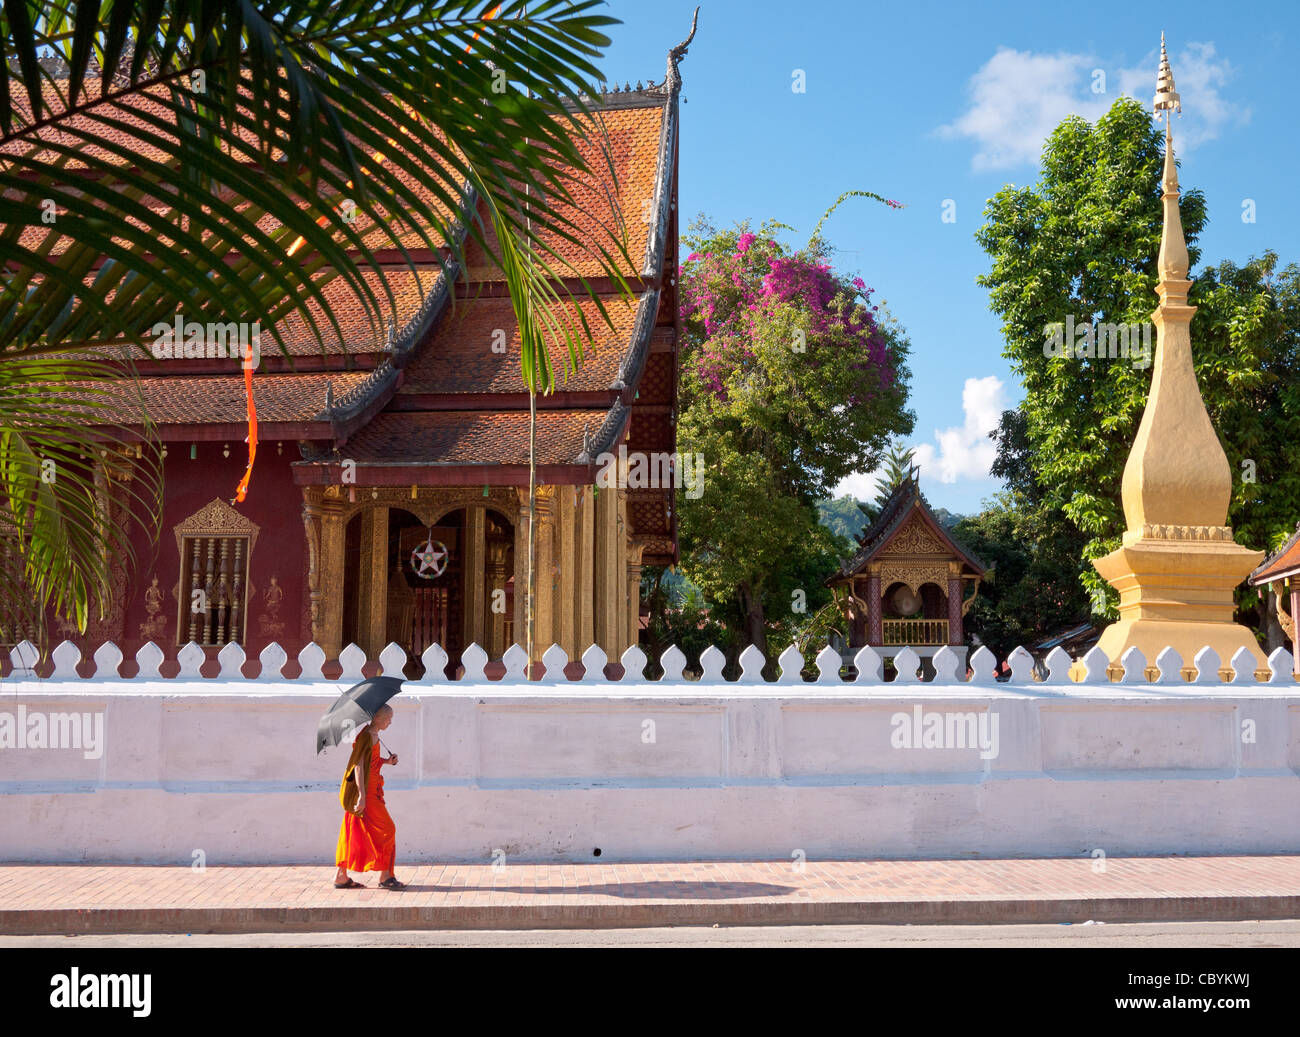 An orange-robed Buddhist monk walks down the street in front of the Wat Sen Temple in Luang Prabang, Laos. - Stock Image